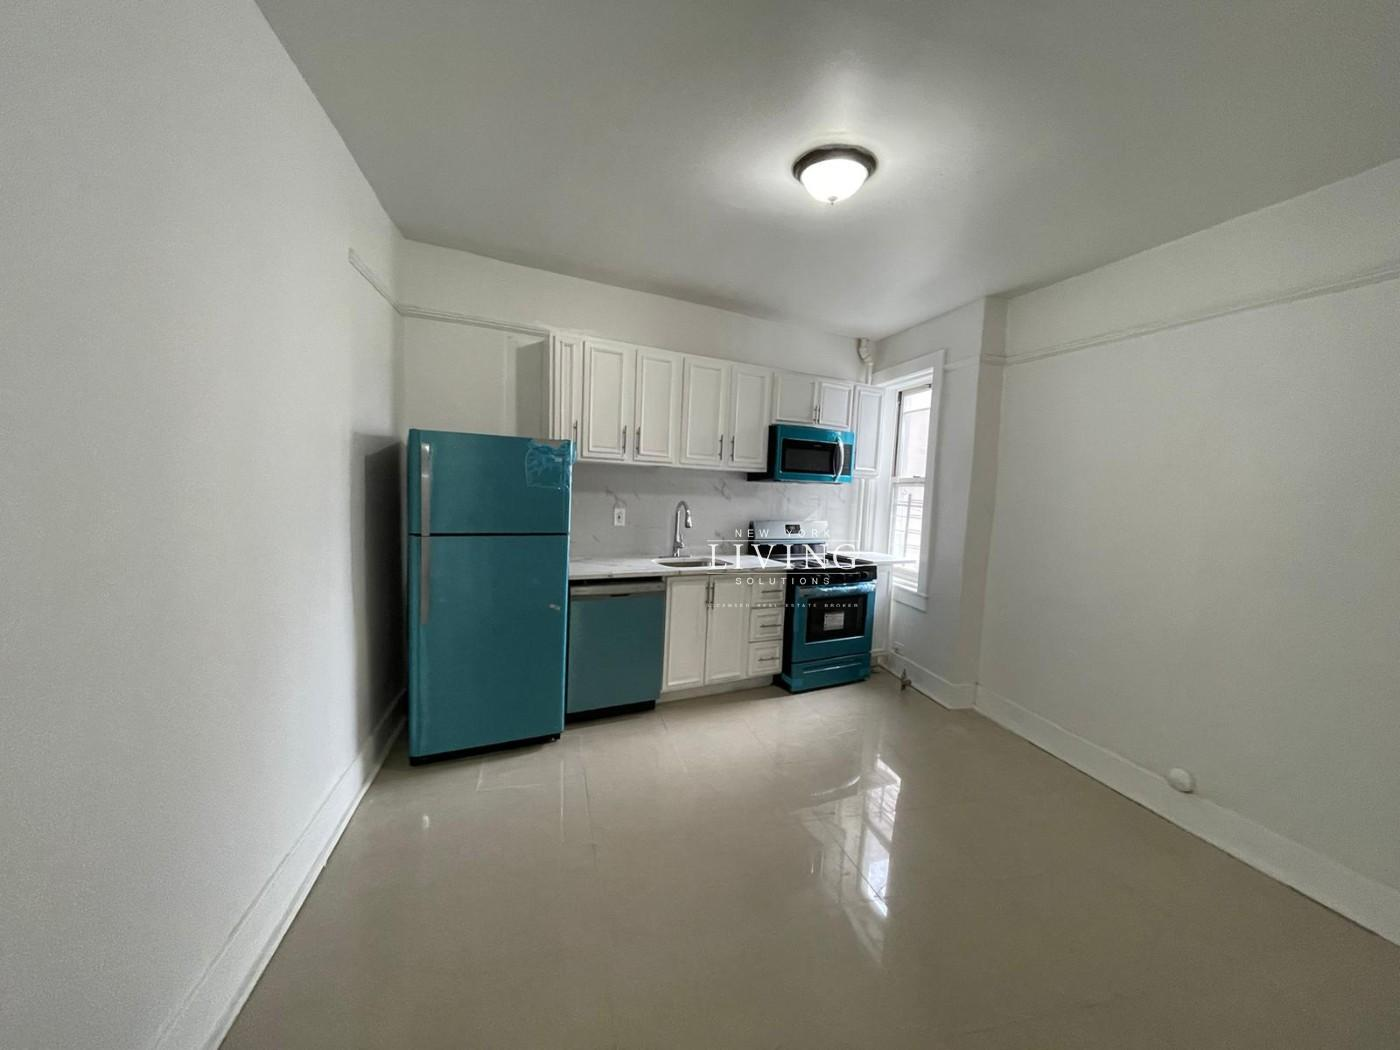 67-28 78th Street Middle Village Queens NY 11379